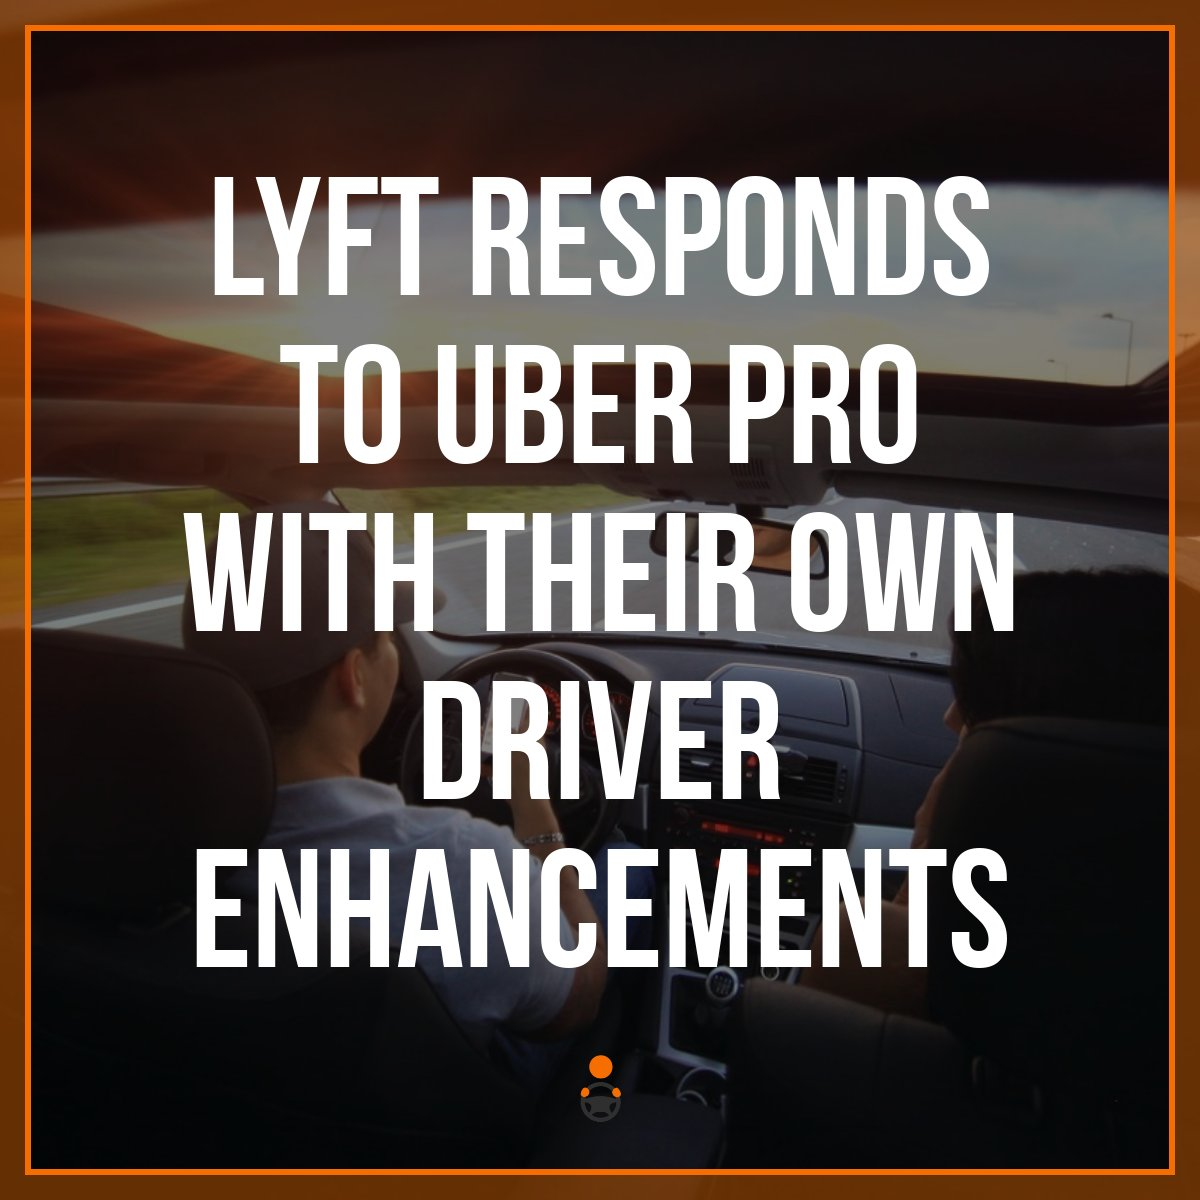 Lyft Responds to Uber Pro With Their Own Driver Enhancements